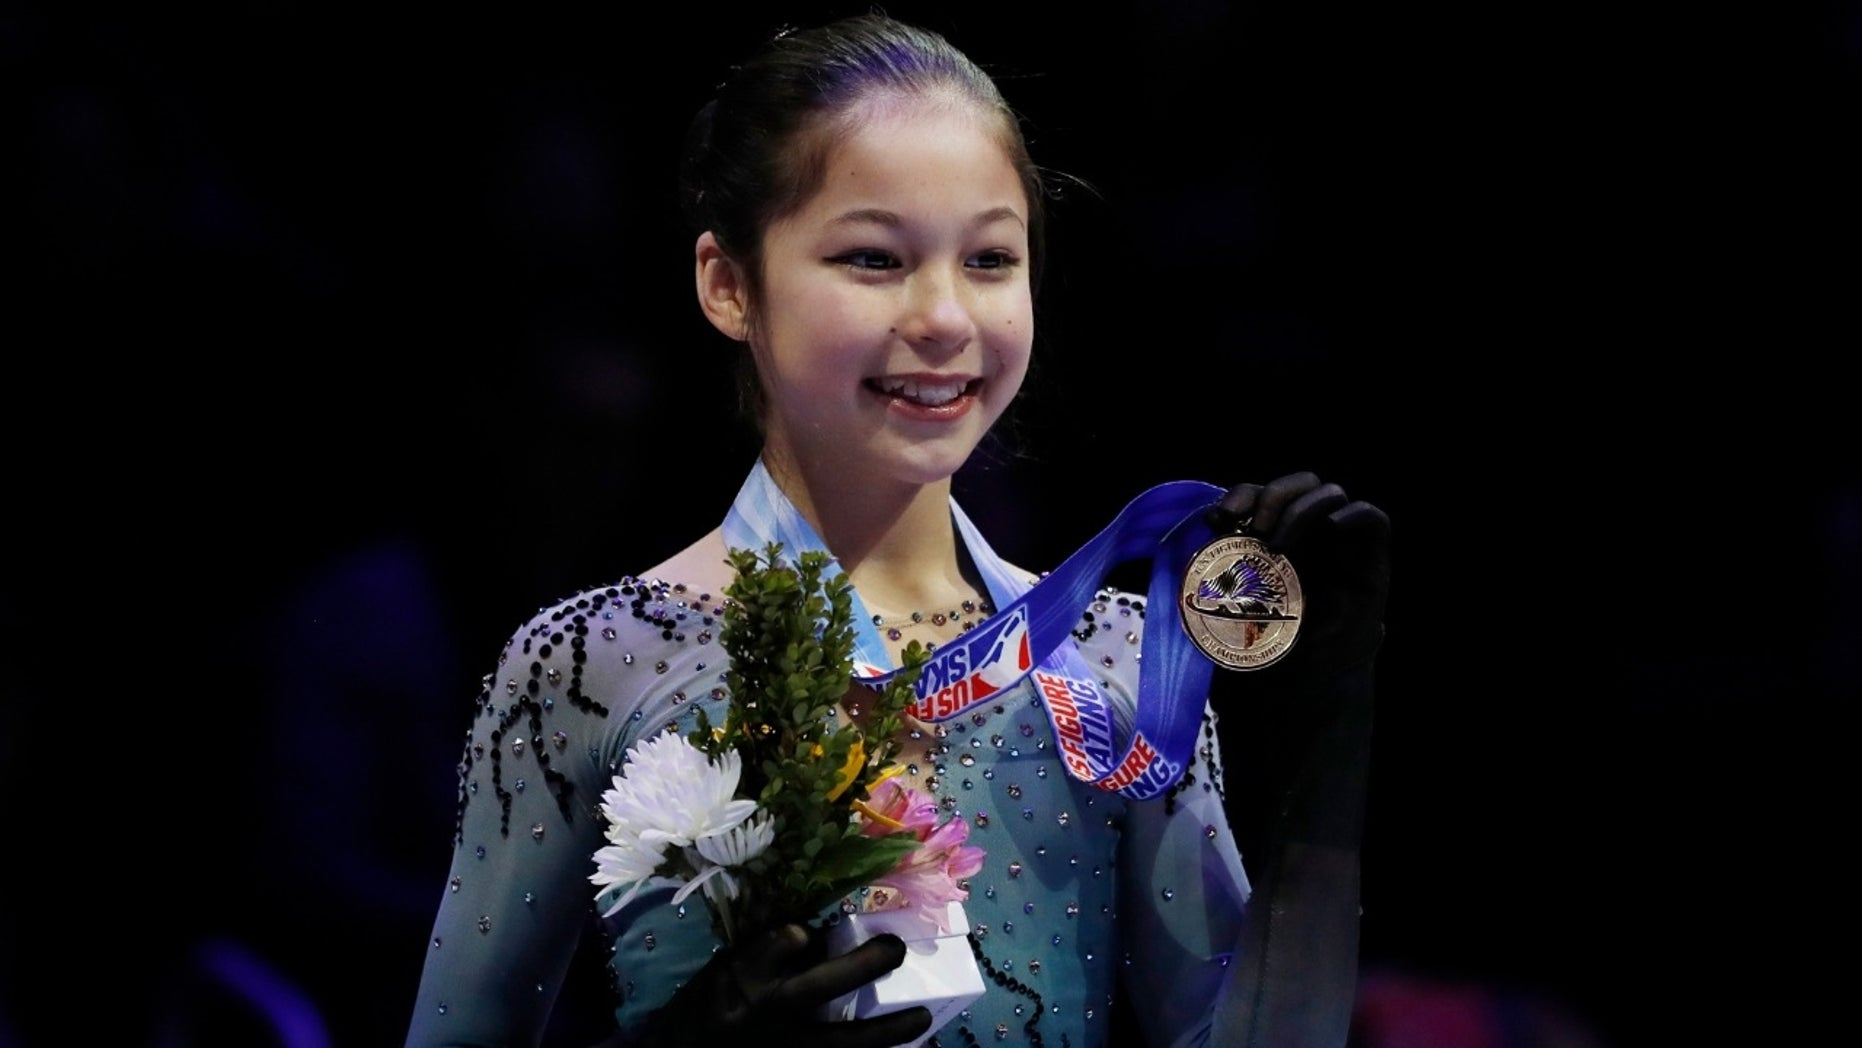 Alysa Liu holds her metal after winning the women's title during the U.S. Figure Skating Championships on Friday, Jan. 25, 2019.